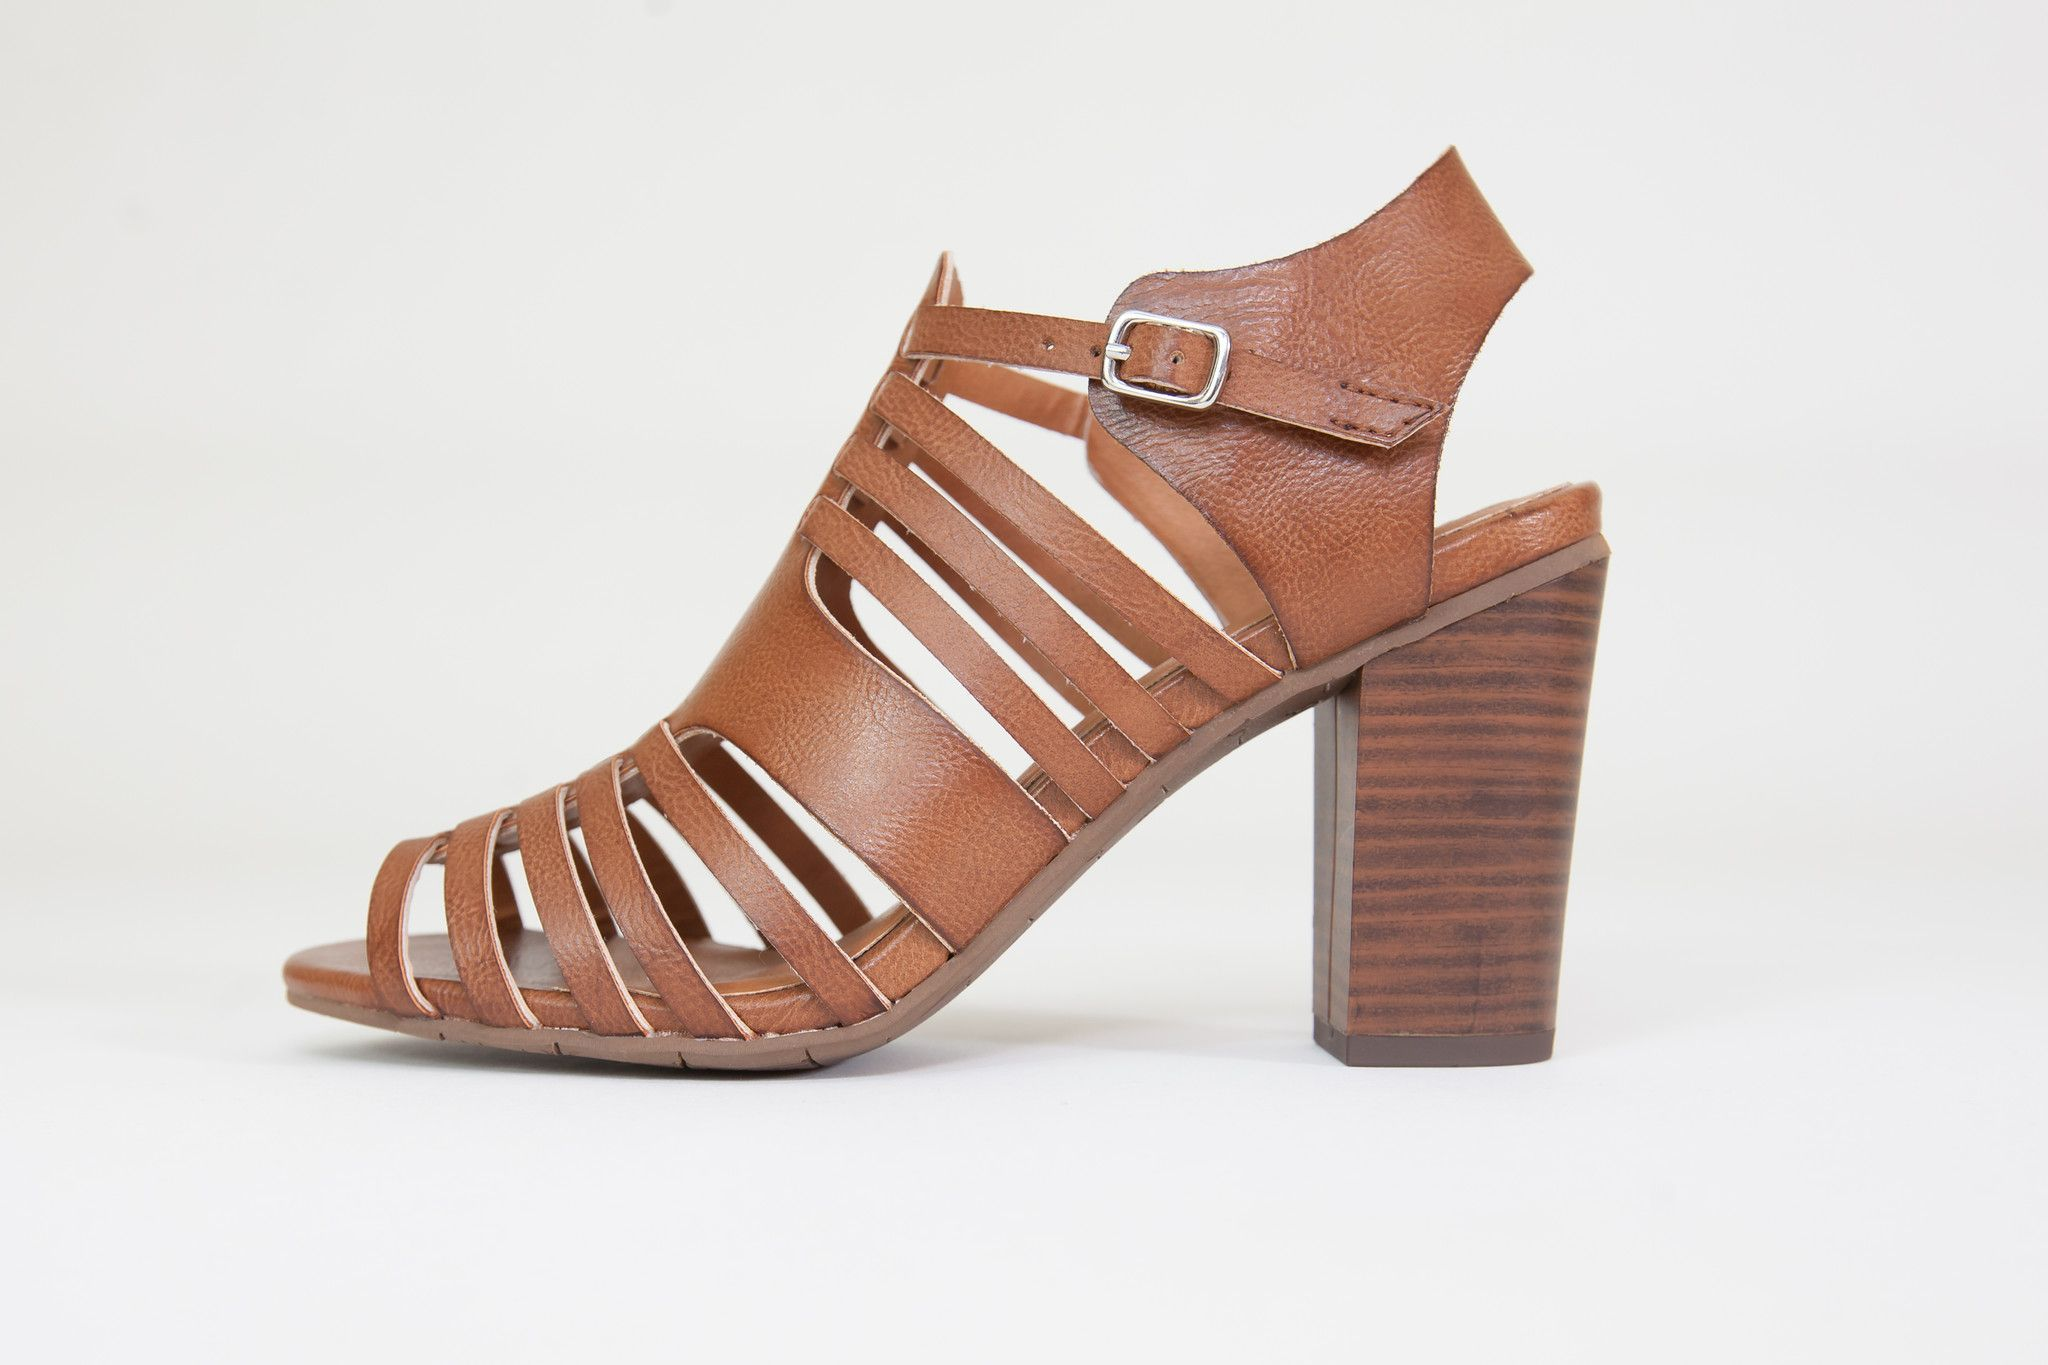 Seychelles Rescue Tan Heels | Shoes | June Ruby